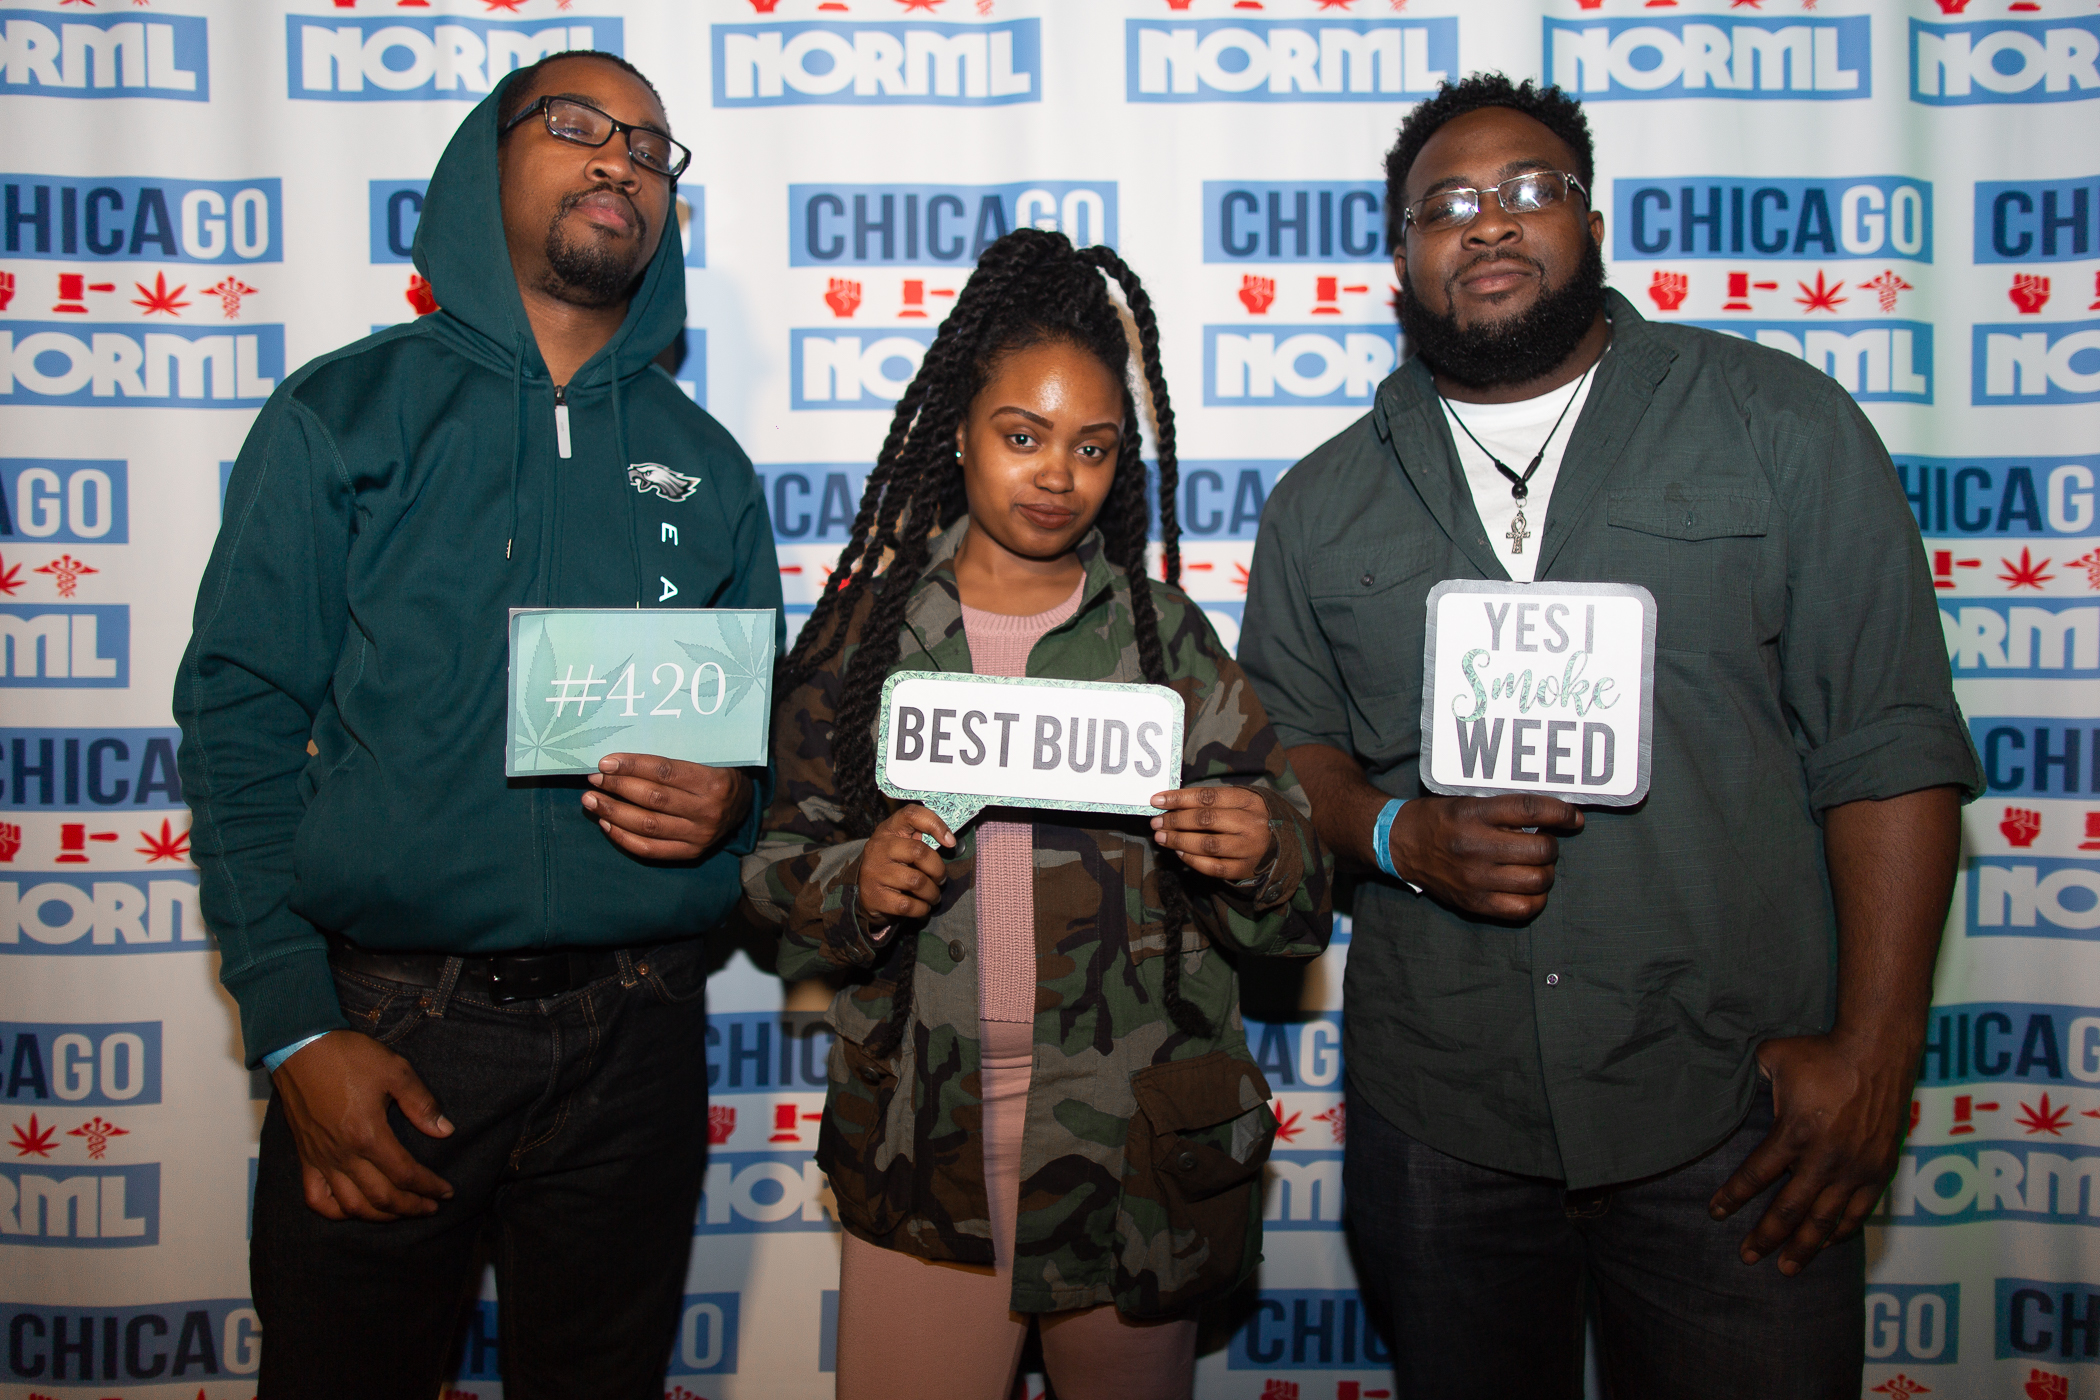 Copy of 20180420 - Chicago Norml-80.jpg